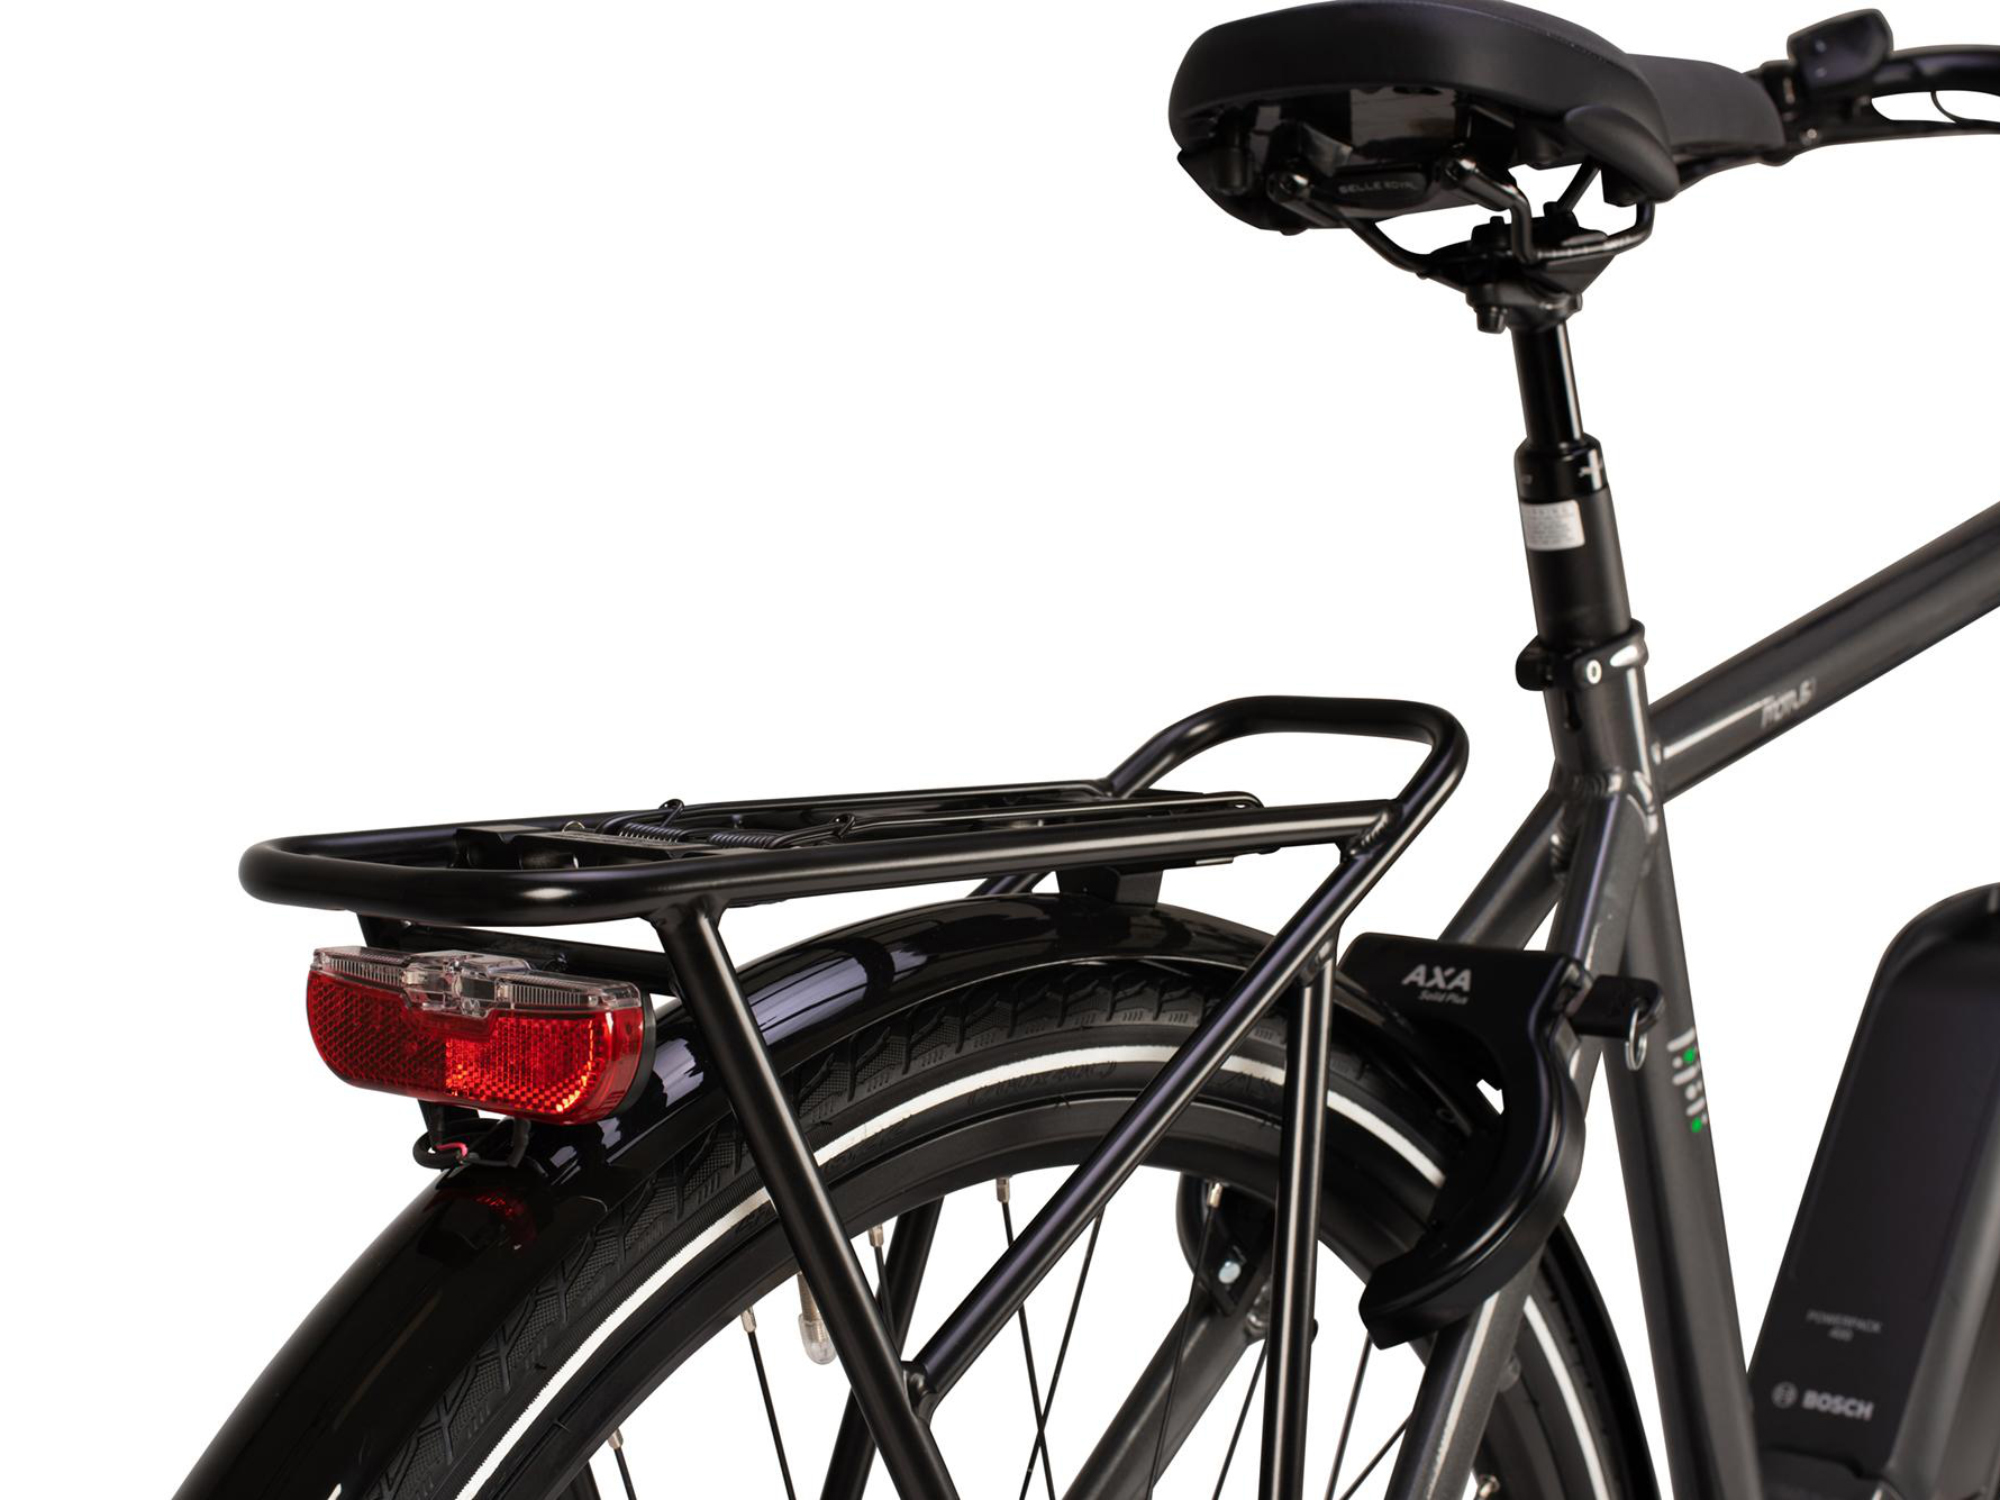 Rear luggage rack on the Raleigh Motus Tour electric bike